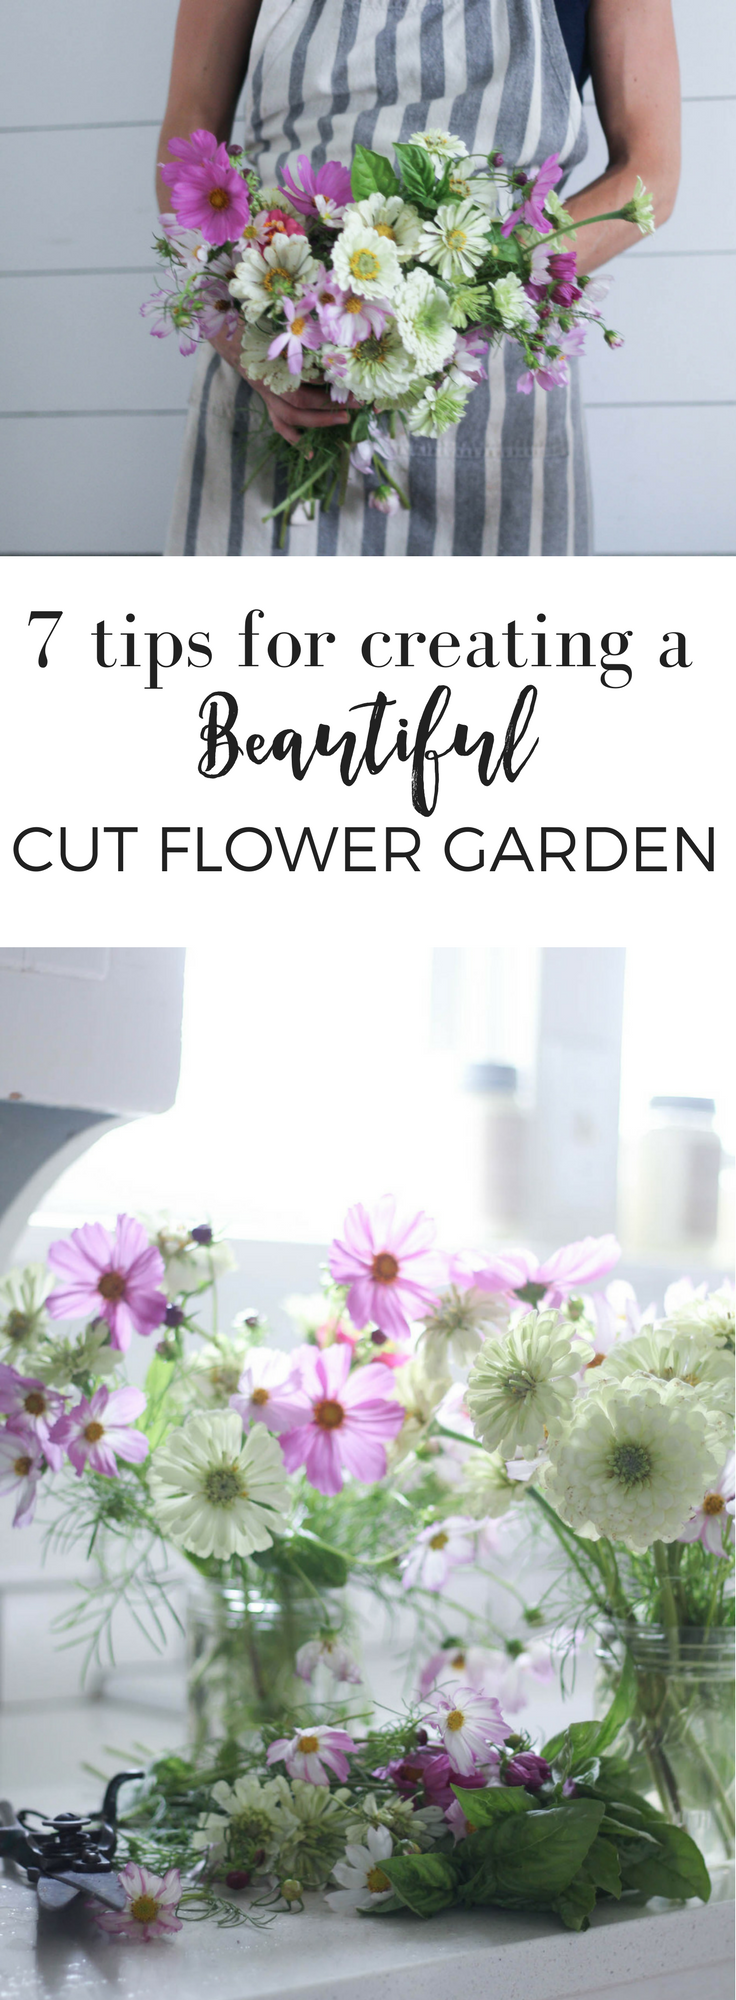 Tips For Creating A Beautiful Cut Flower Garden And How To Make Simple  Arrangements